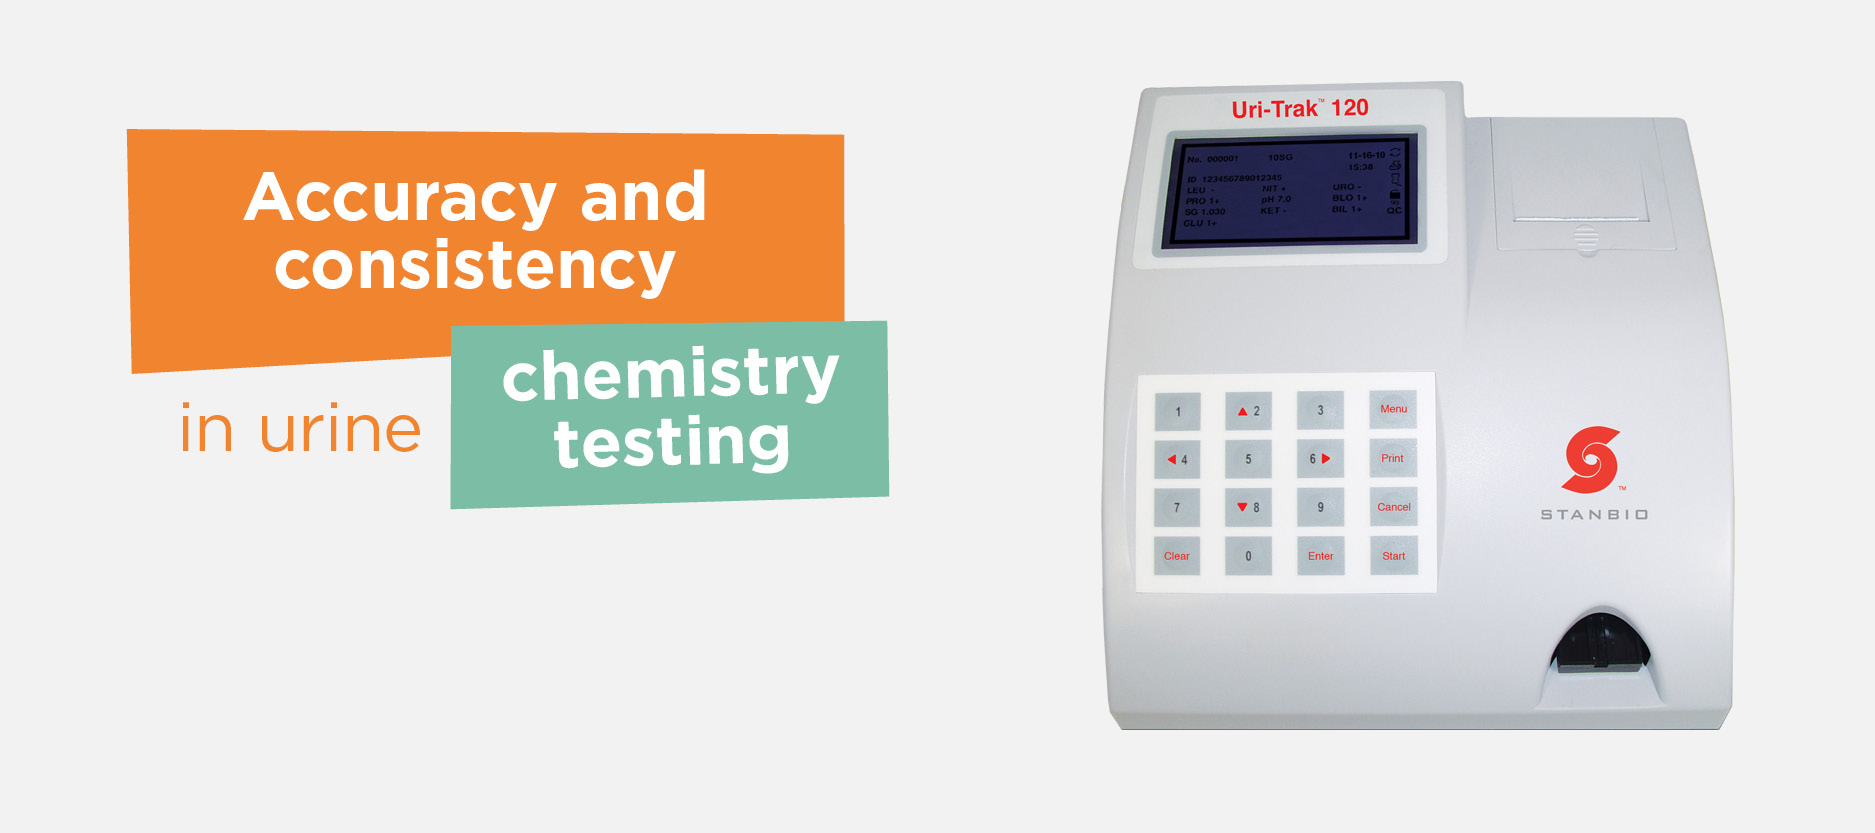 Uri-Trak-120-Urine-Analyzer